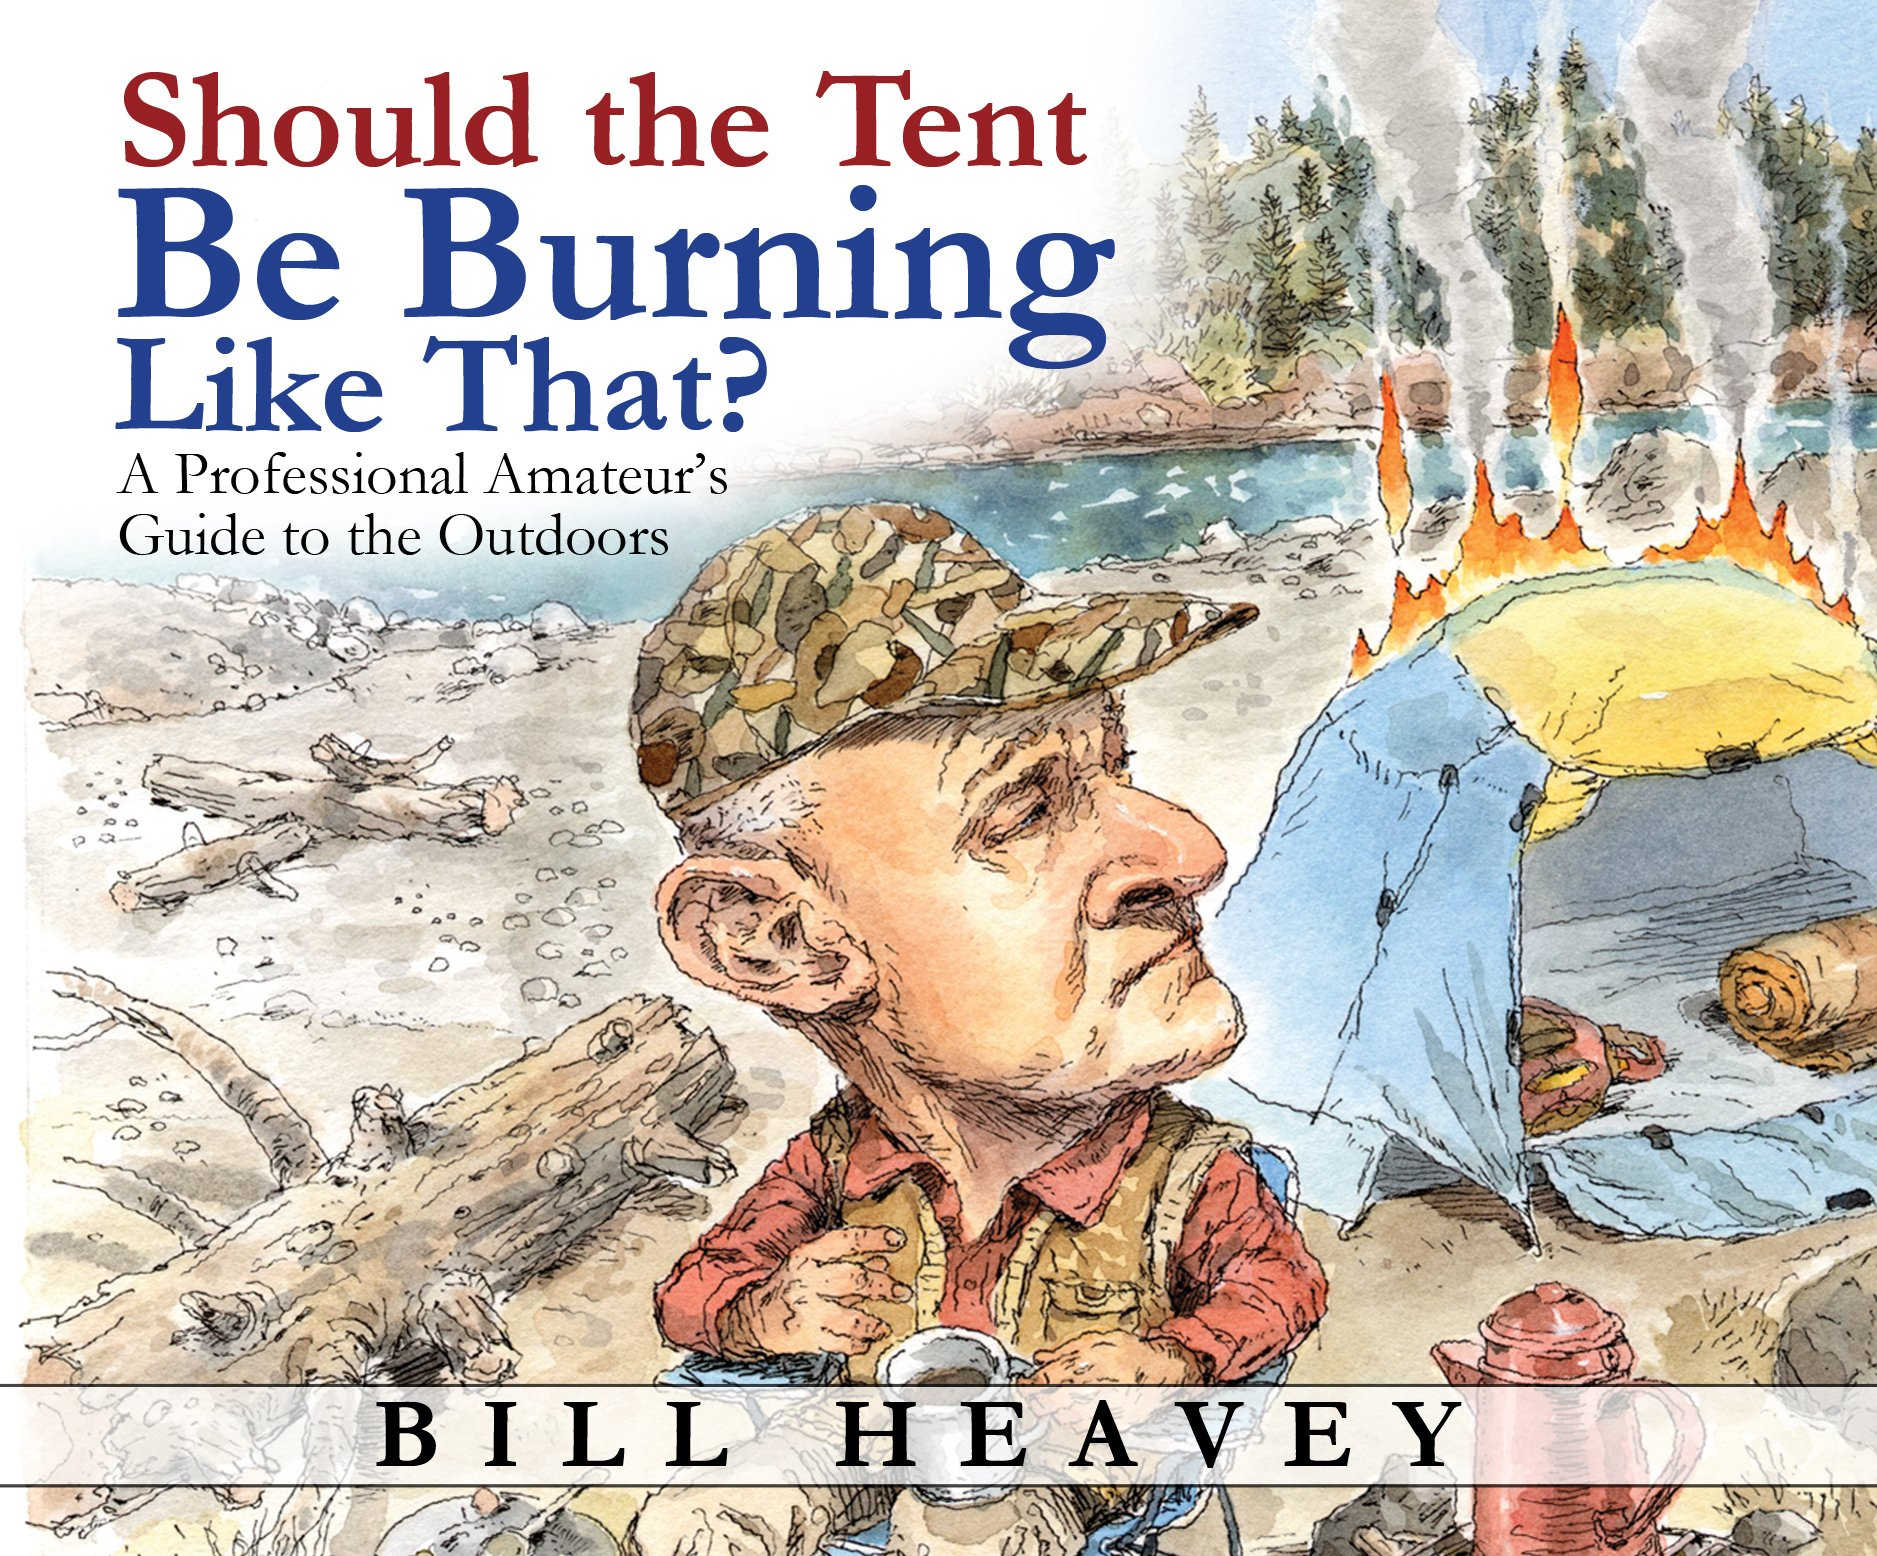 Should the Tent Be Burning Like That?: A Professional Amateur's Guide to the Outdoors